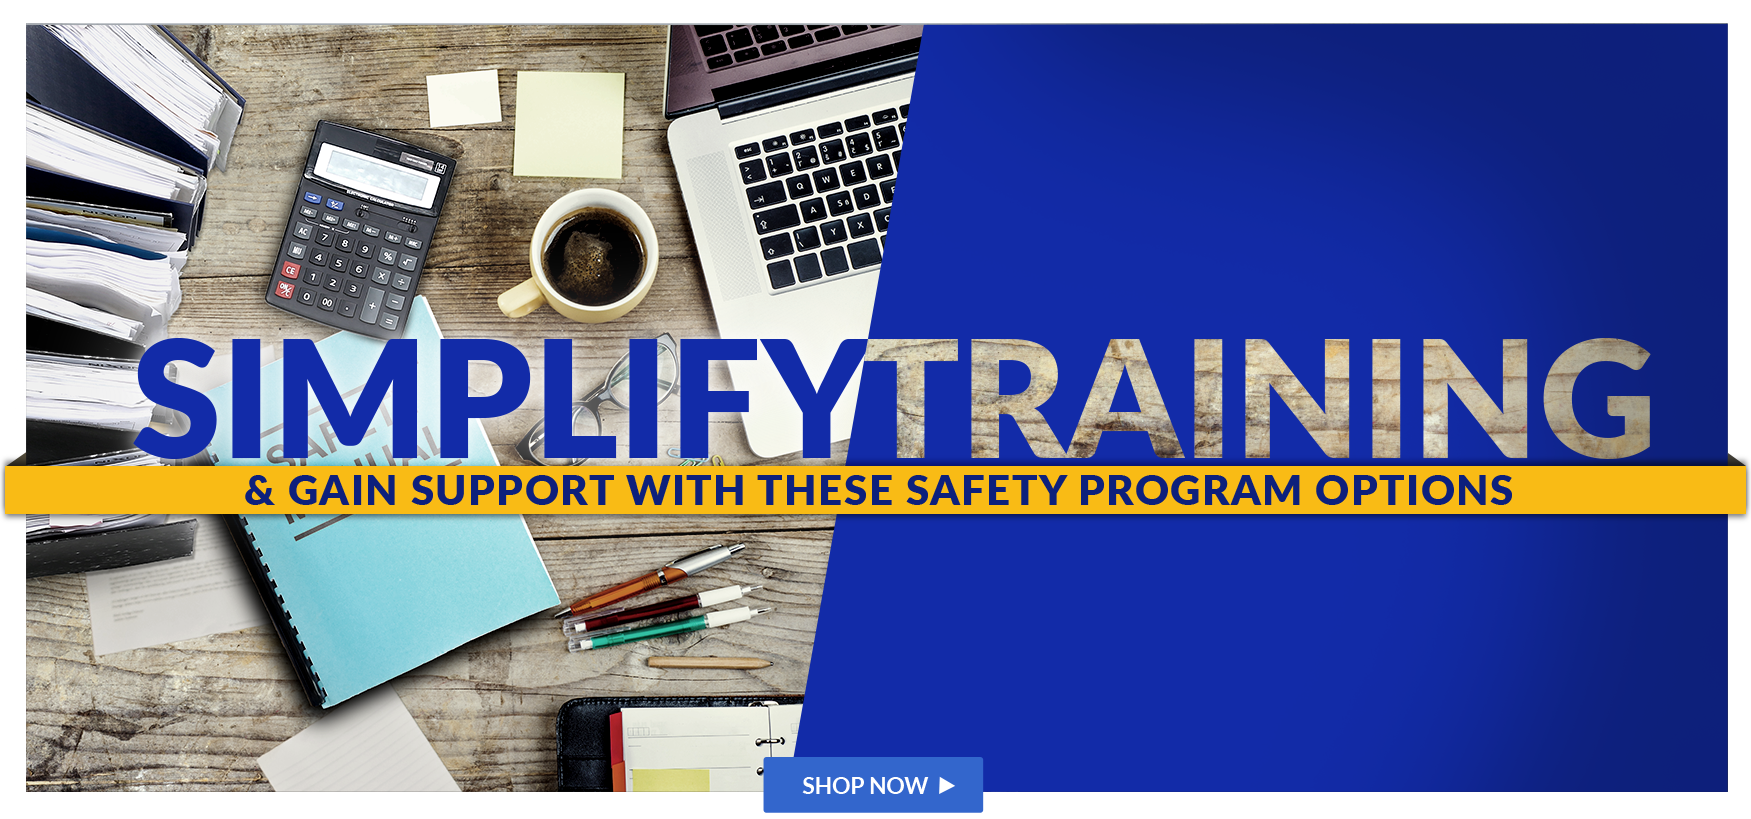 Simplify Training and Gain Support with These Safety Program Options